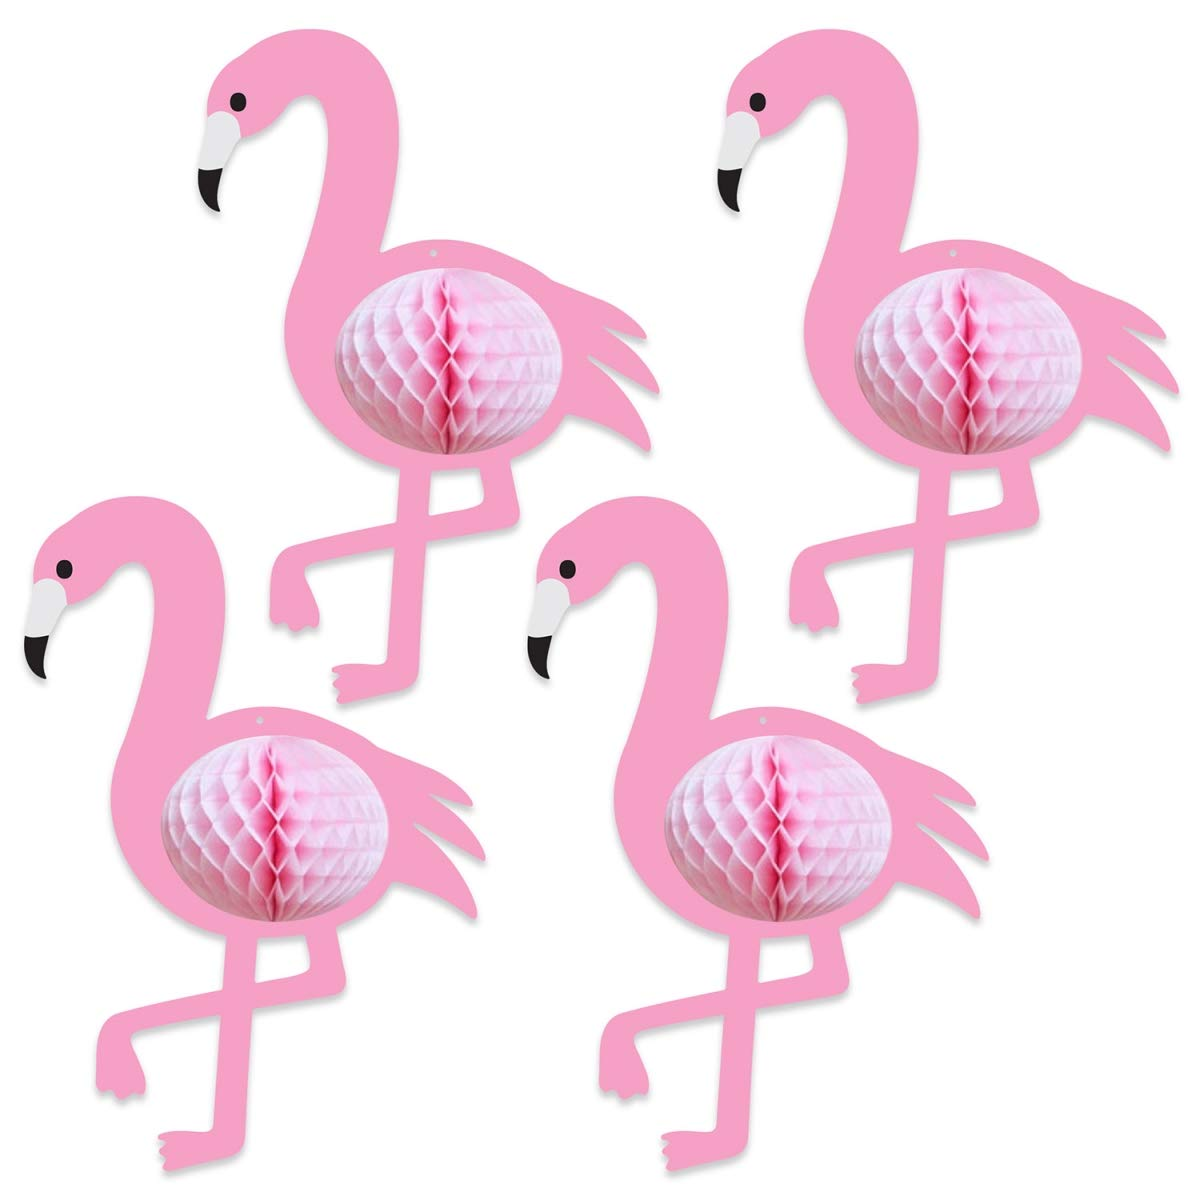 Beistle 53568 10 x 7 in. Tissue Flamingos - Pack of 12